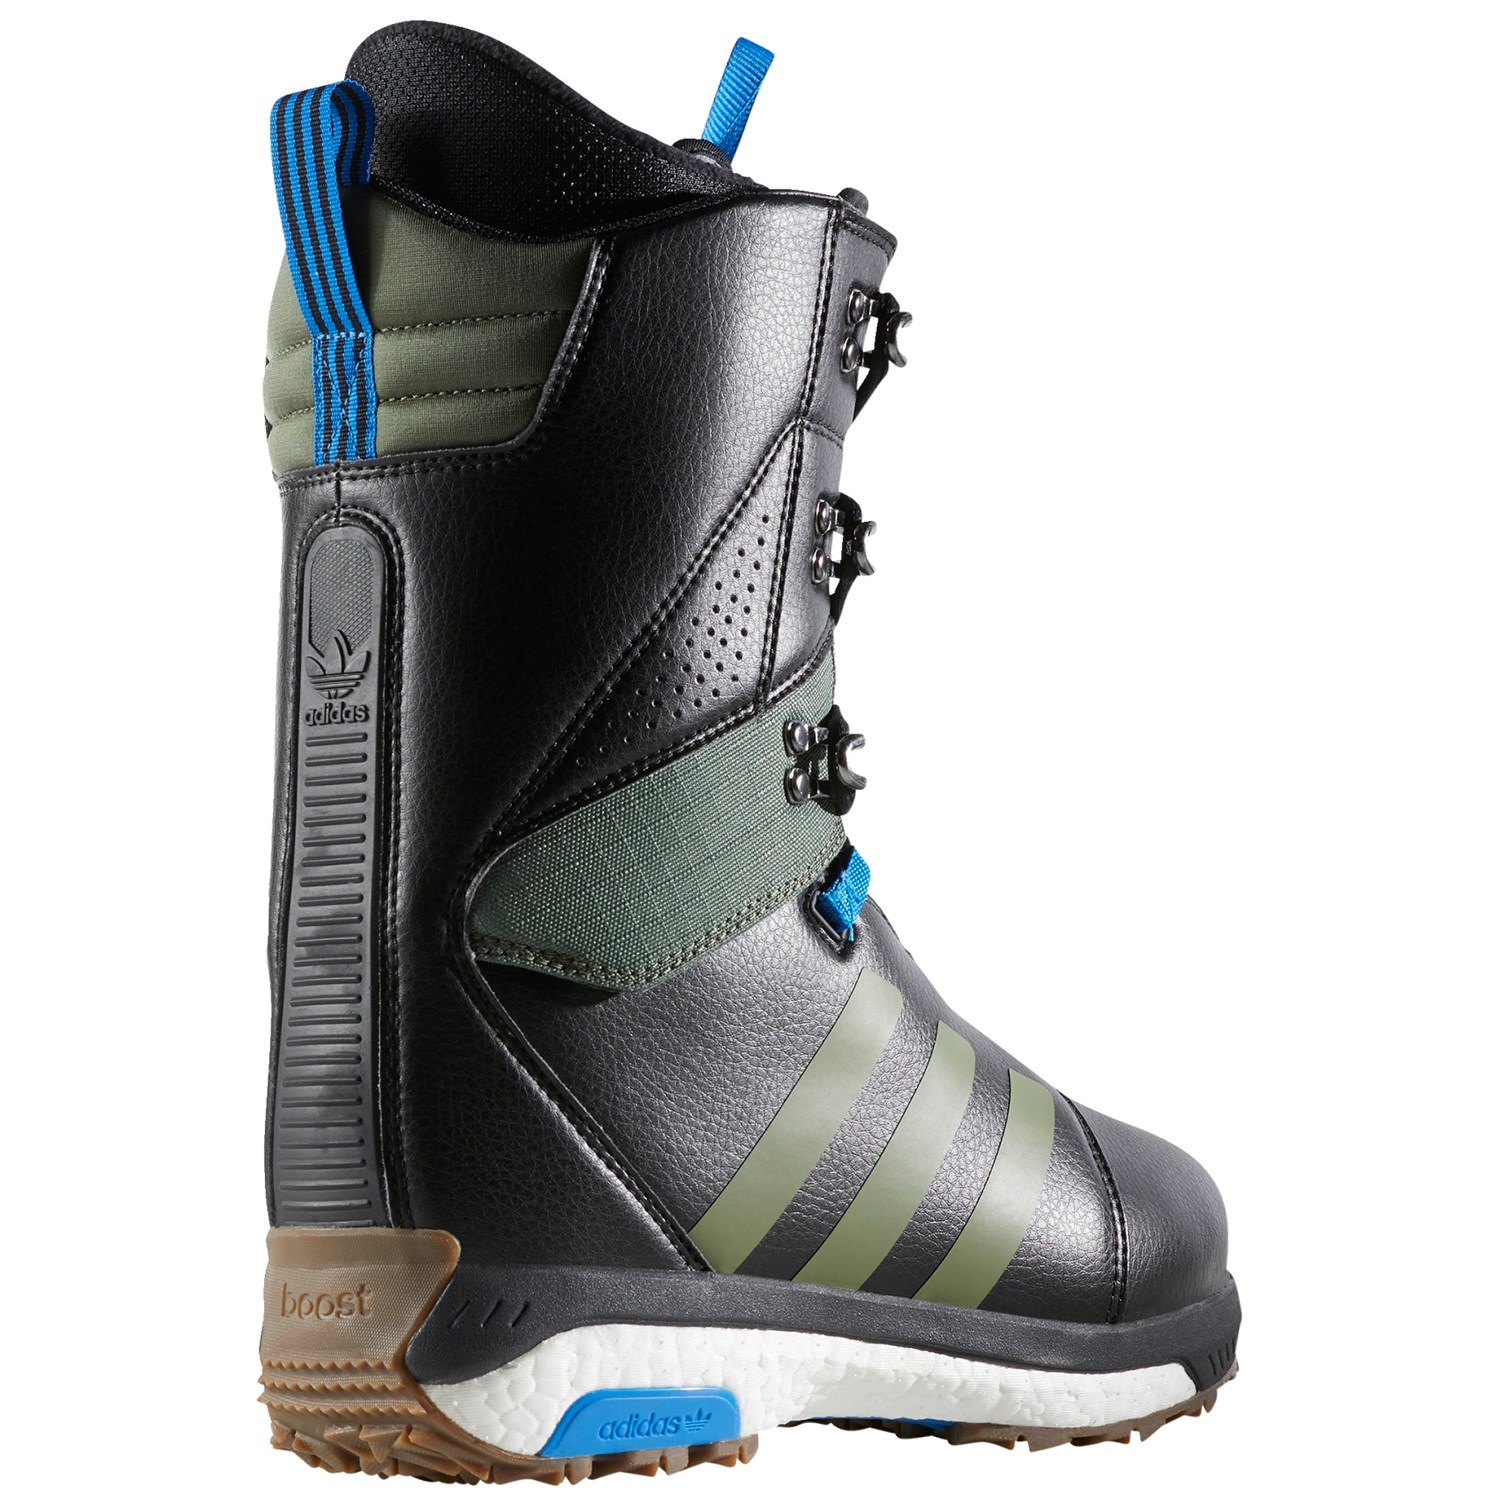 in stock 5a670 0188f Adidas Tactical Boost Snowboard Boots 2018 Evo